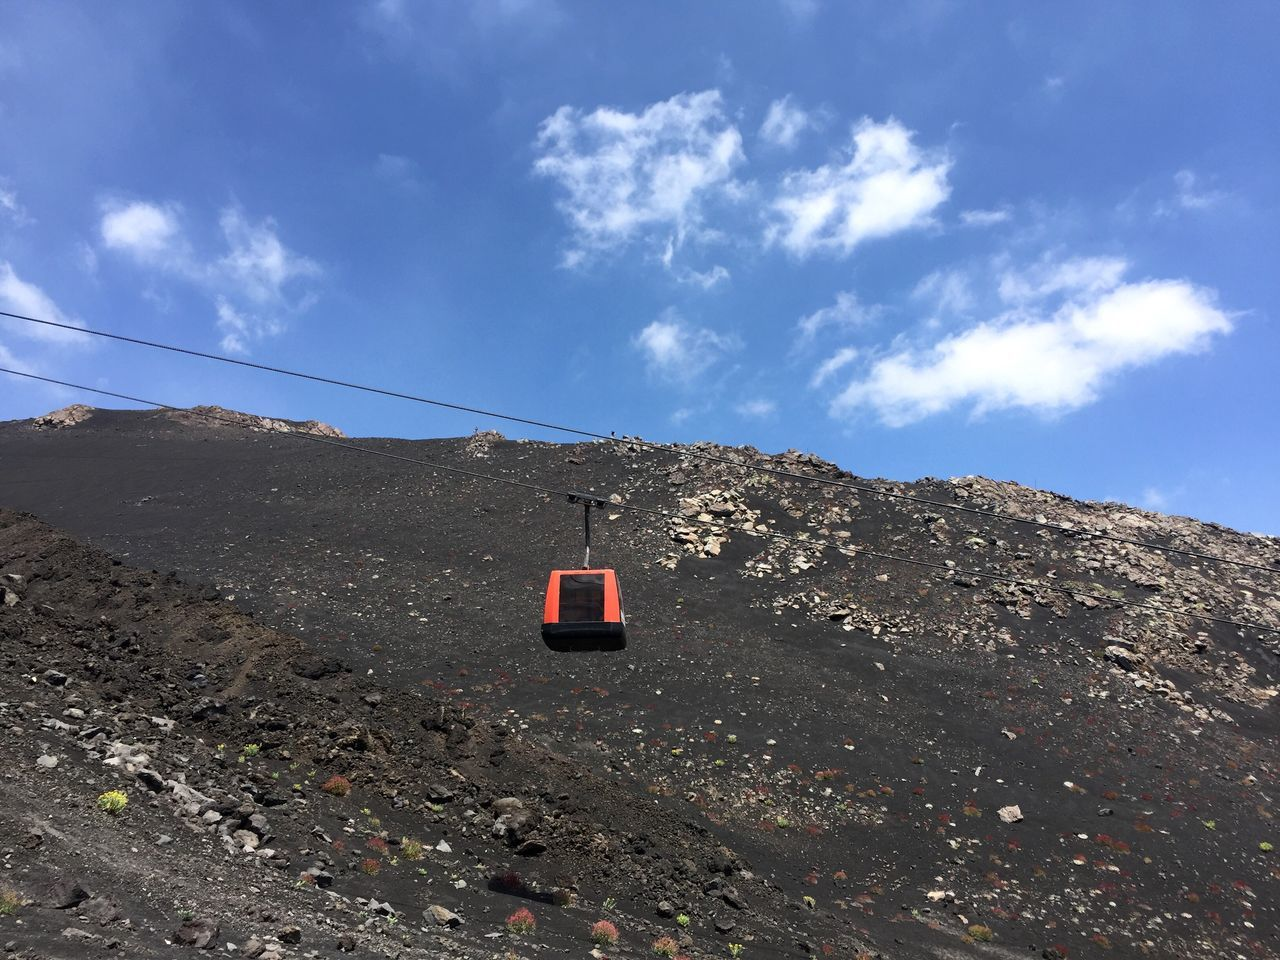 EyeEm Selects EyeEm Selects Etna volcano, Sicily Sky No People Day Cloud - Sky Outdoors Blue Nature Landscape Mountain Beauty In Nature Cable Car Going Up Etna Sommergefühle